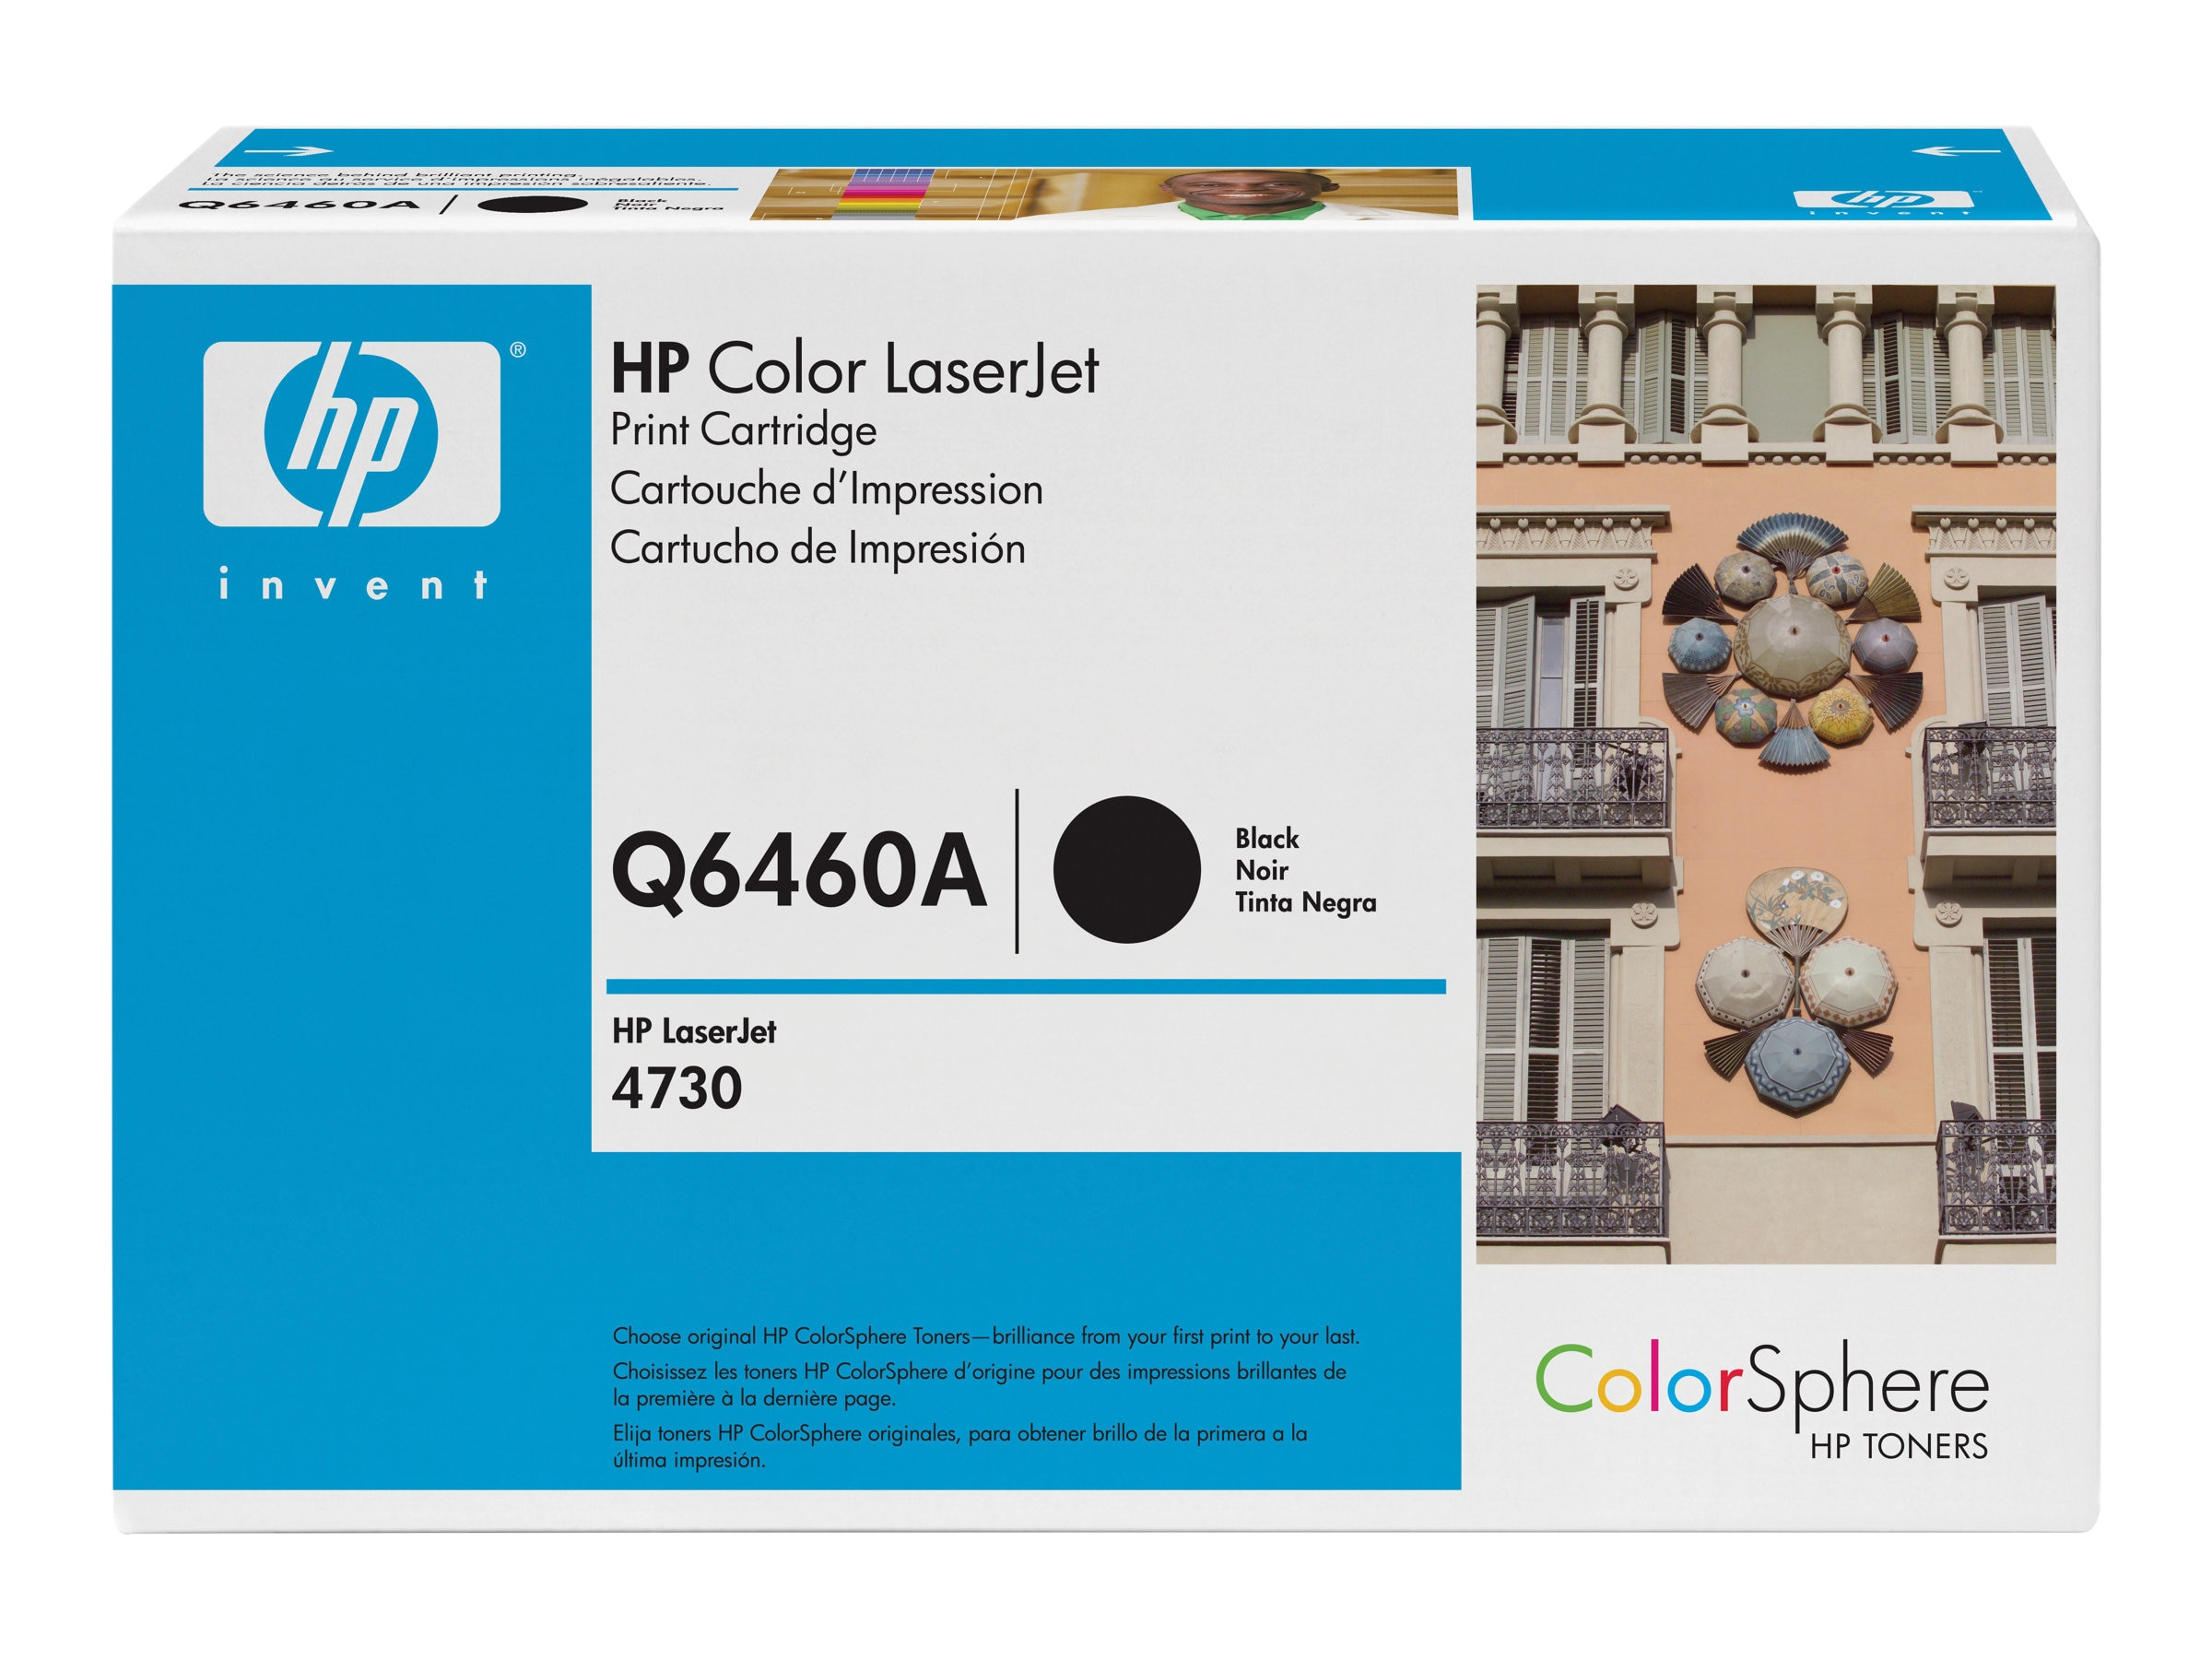 HP 644A (Q6460A) Black Original LaserJet Toner Cartridge for HP Color LaserJet 4730 Printers